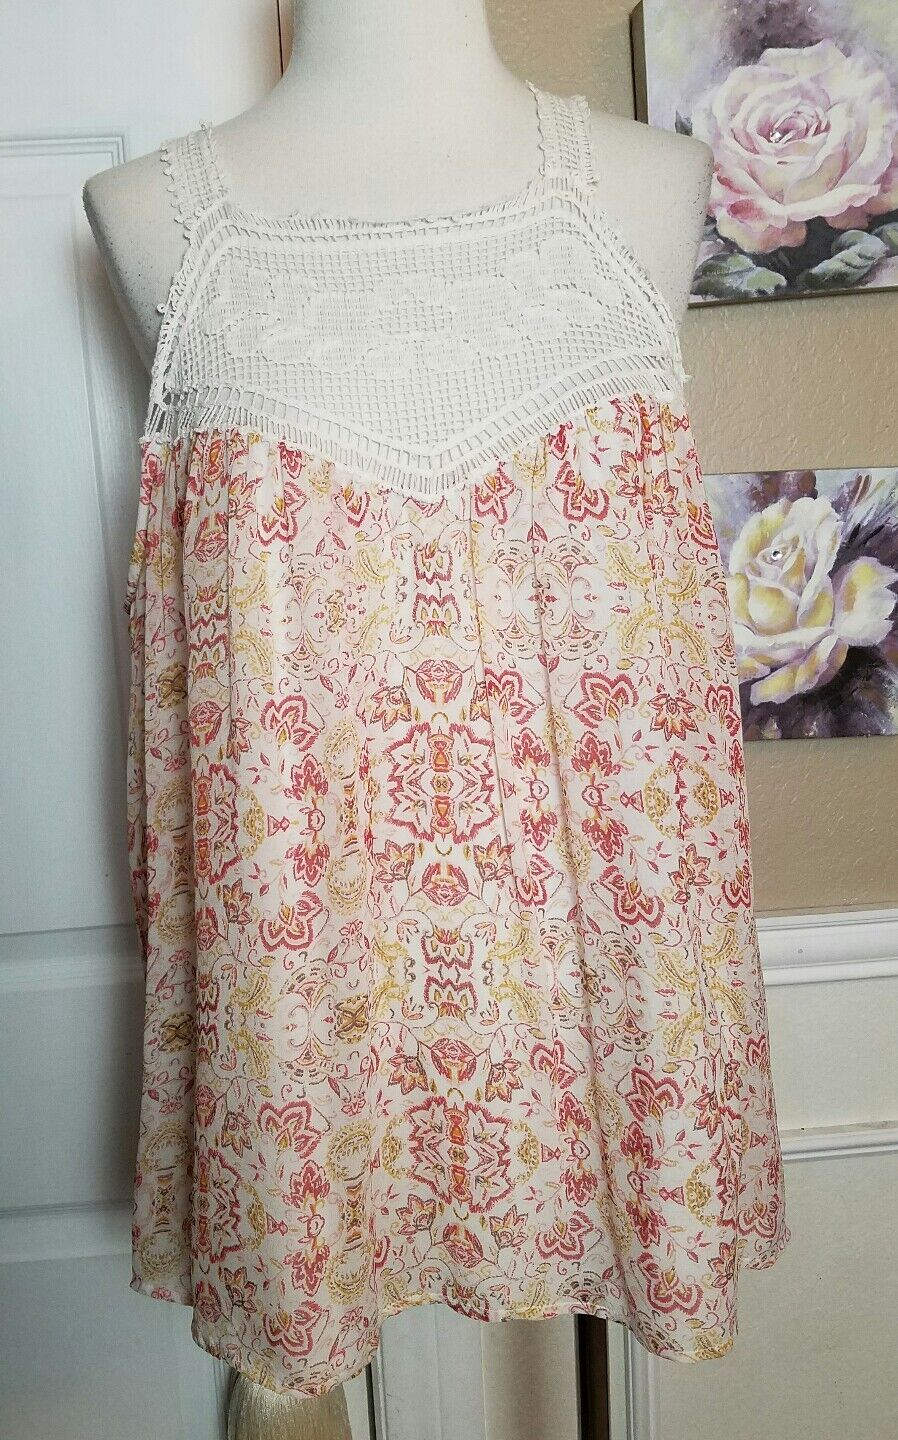 JOIE Bayard Crocheted Yoke Lace Trim Porcelain Printed 100% Silk Tank Top sz M